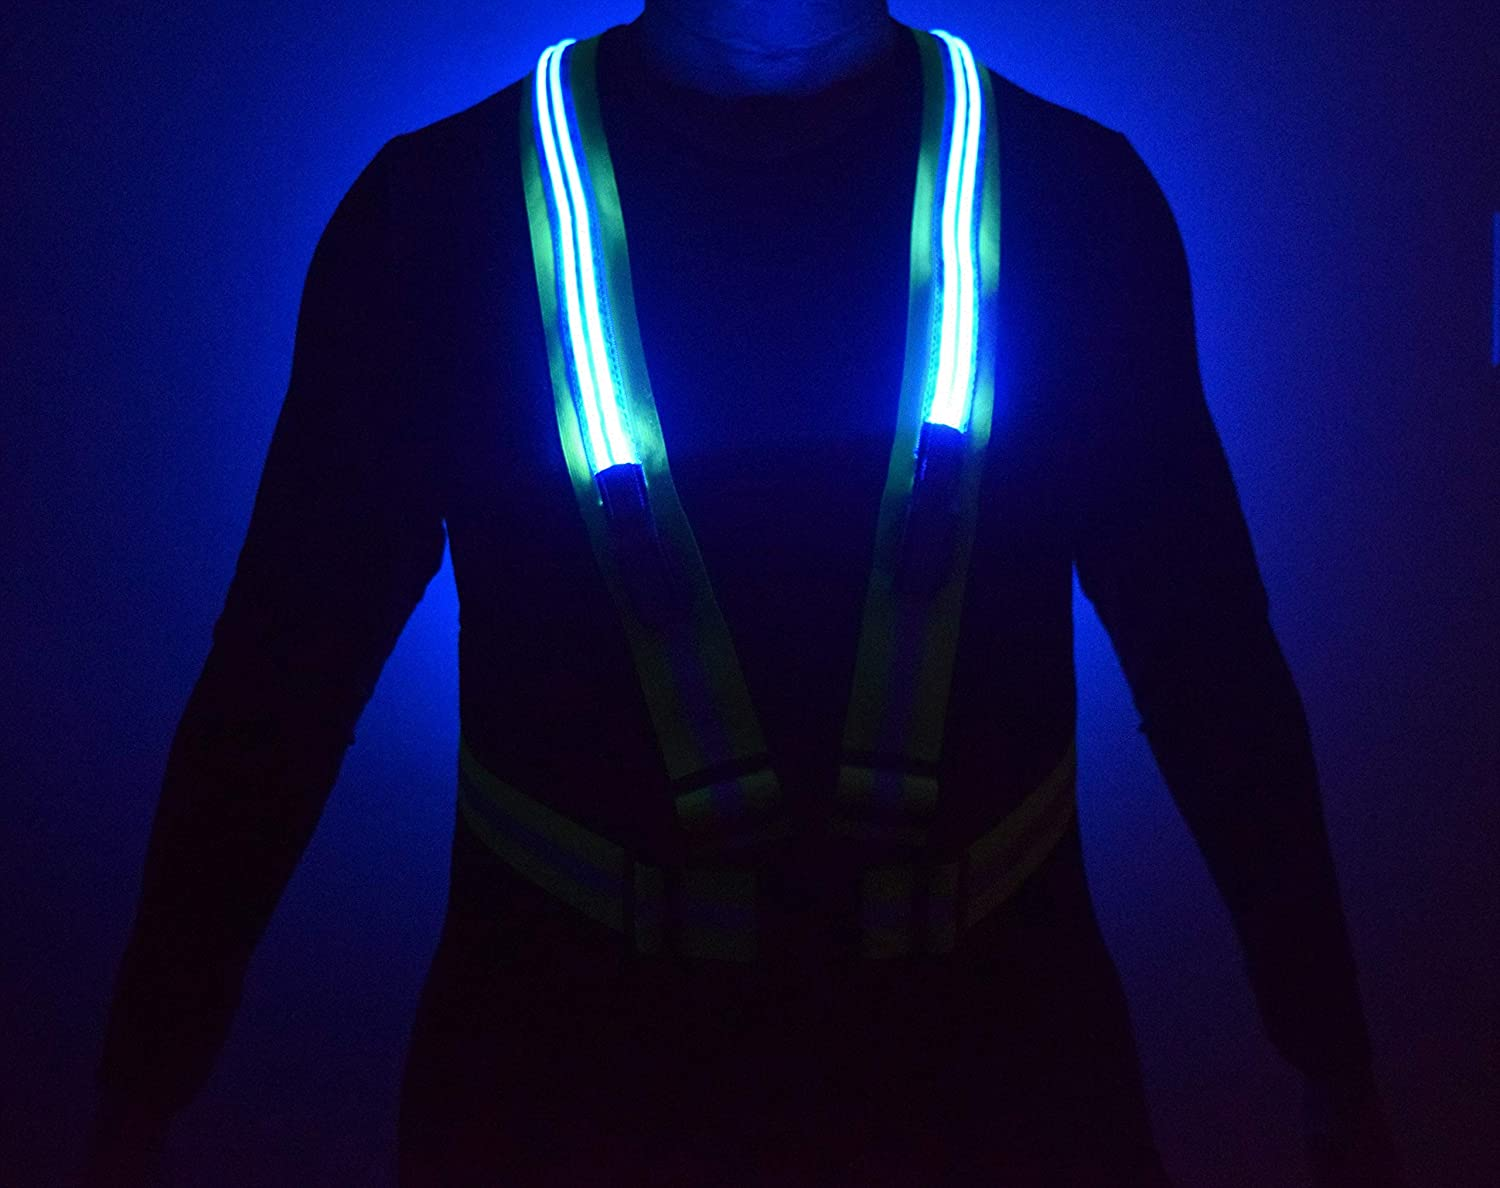 Cycling Ricky Aubrey Adjustable Straps in Waist and Shoulders Lightweight for Running Walking and Construction Safety Vest with Highly Visible Yellow Double LED Flashing Lights